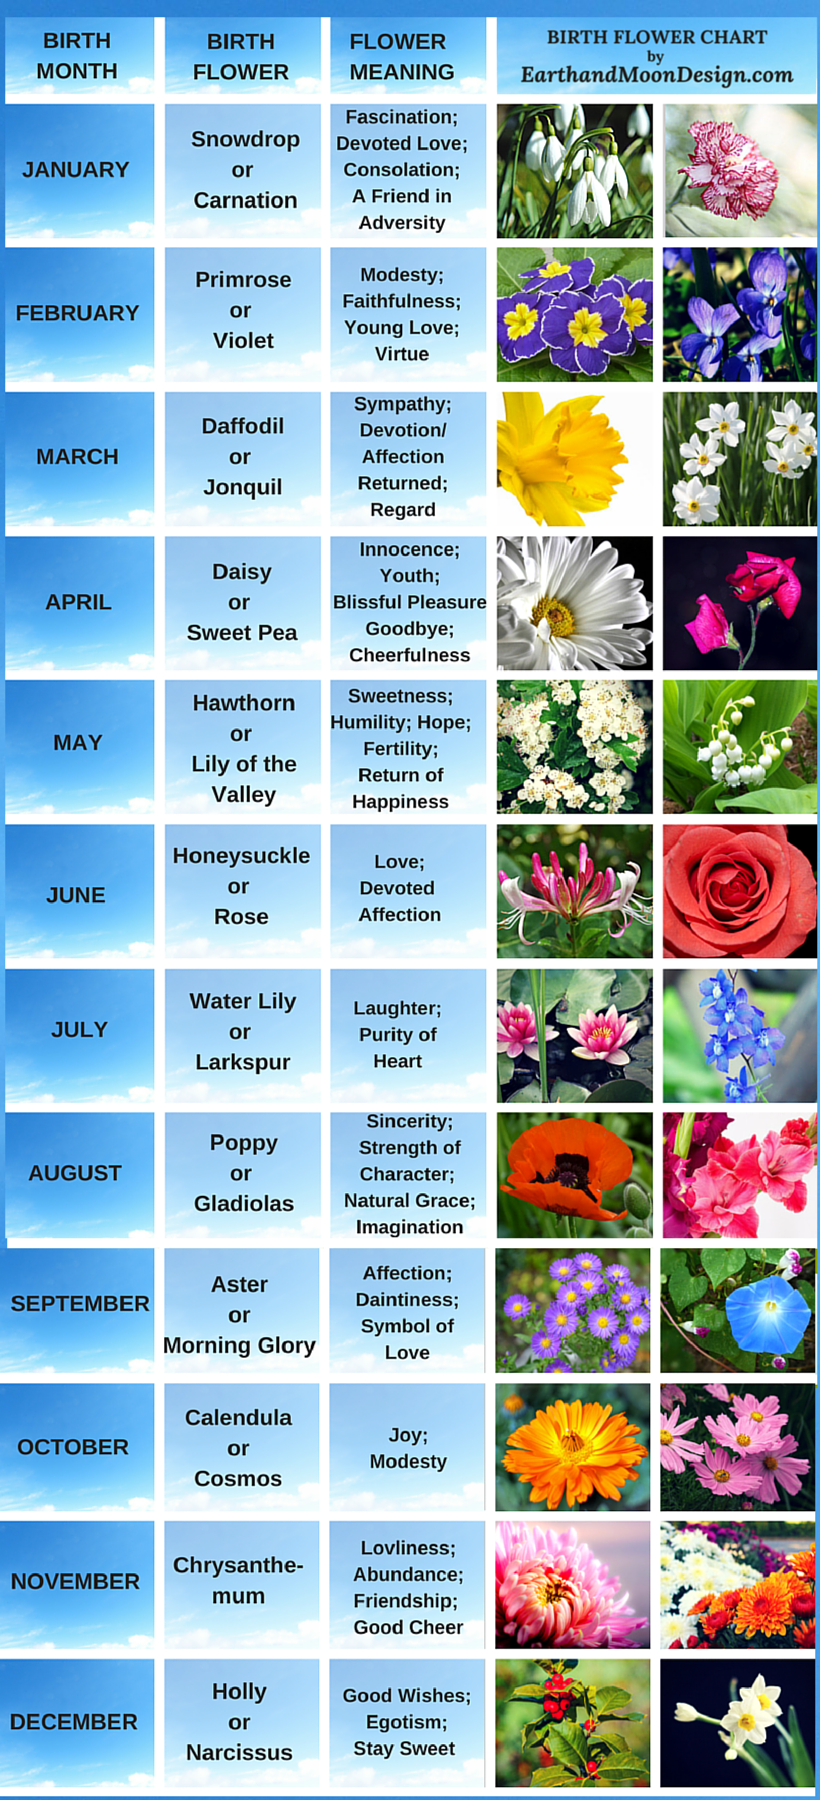 Birth Flowers April S Daisy And Sweet Pea Flower Chart Birth Flowers And Birth